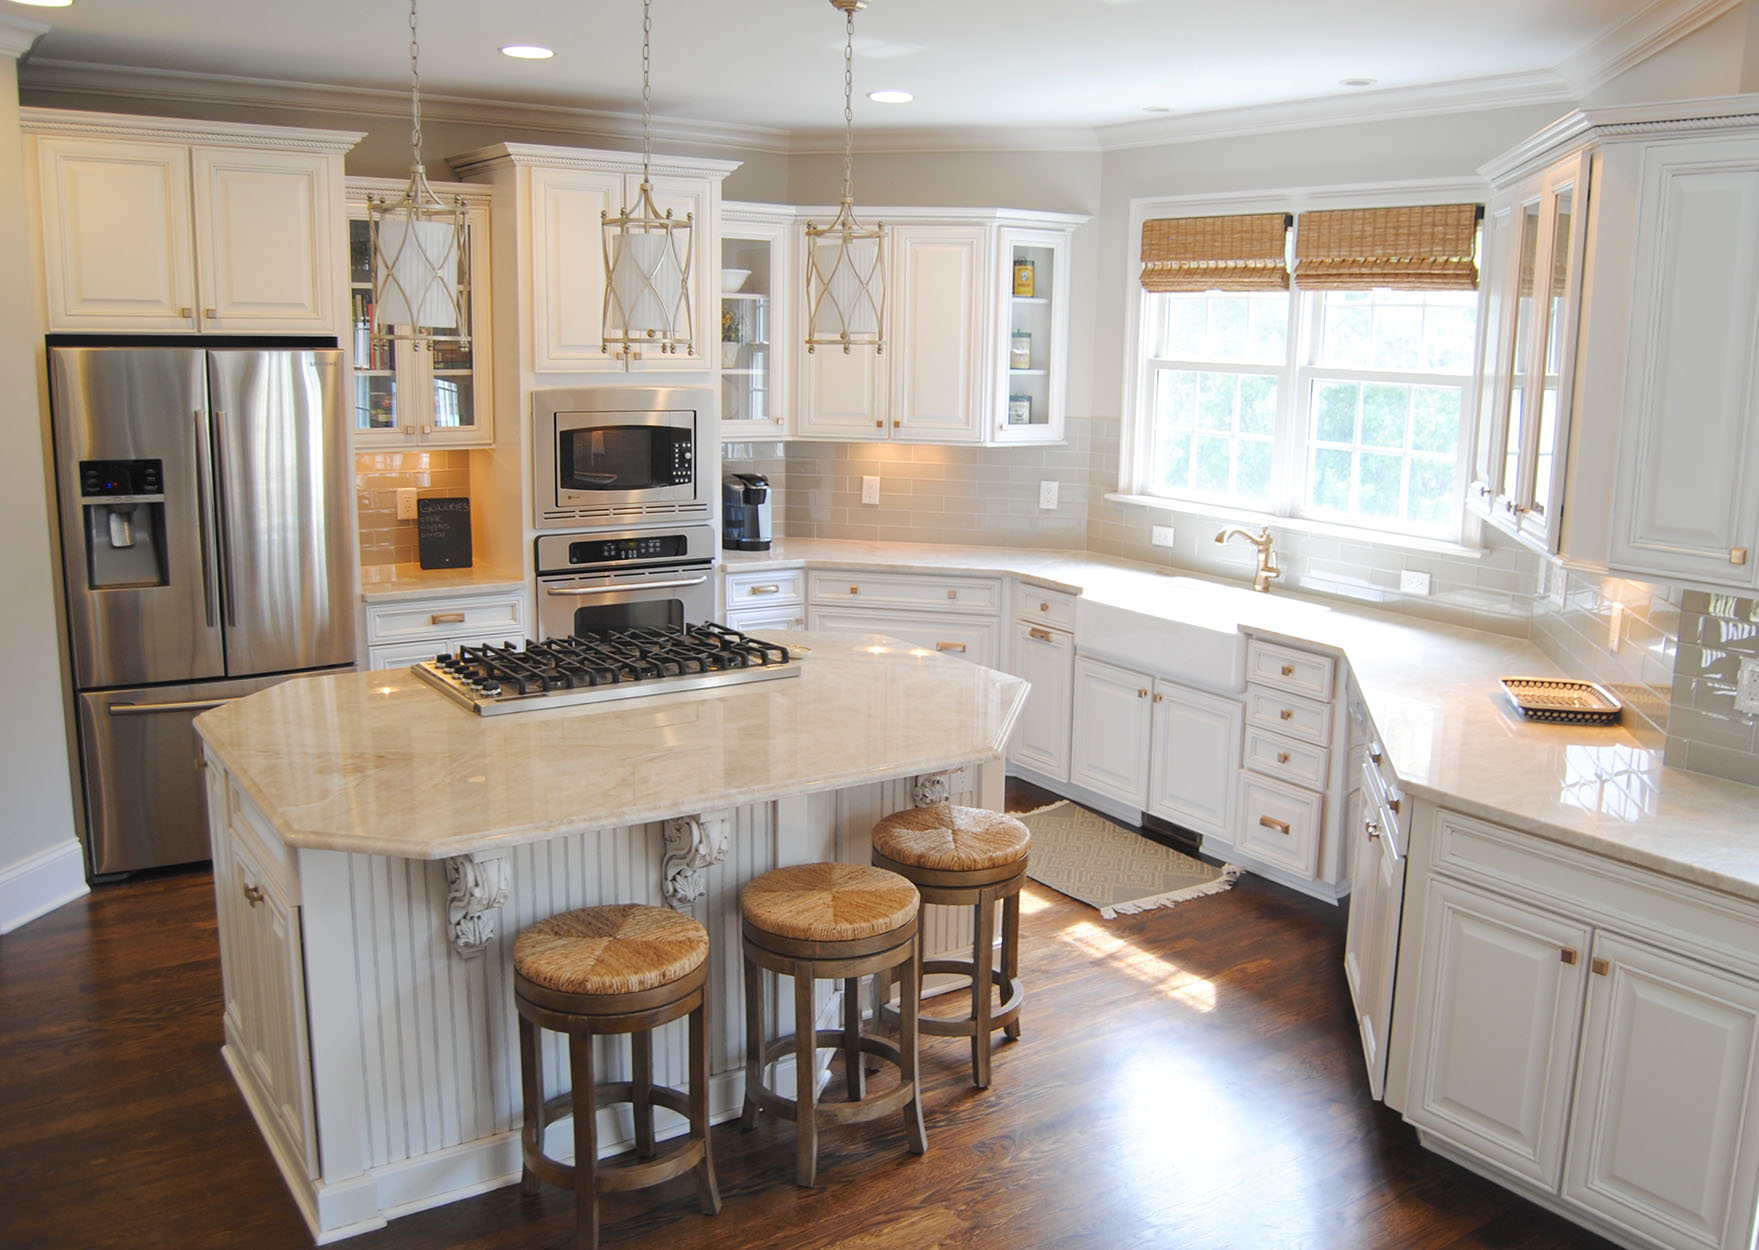 Taj Mahal Quartzite ties the whites and grays from the subway tiles and cabinets together.  Stainless appliances and dark hardwoods bring beautiful contrast to the room.